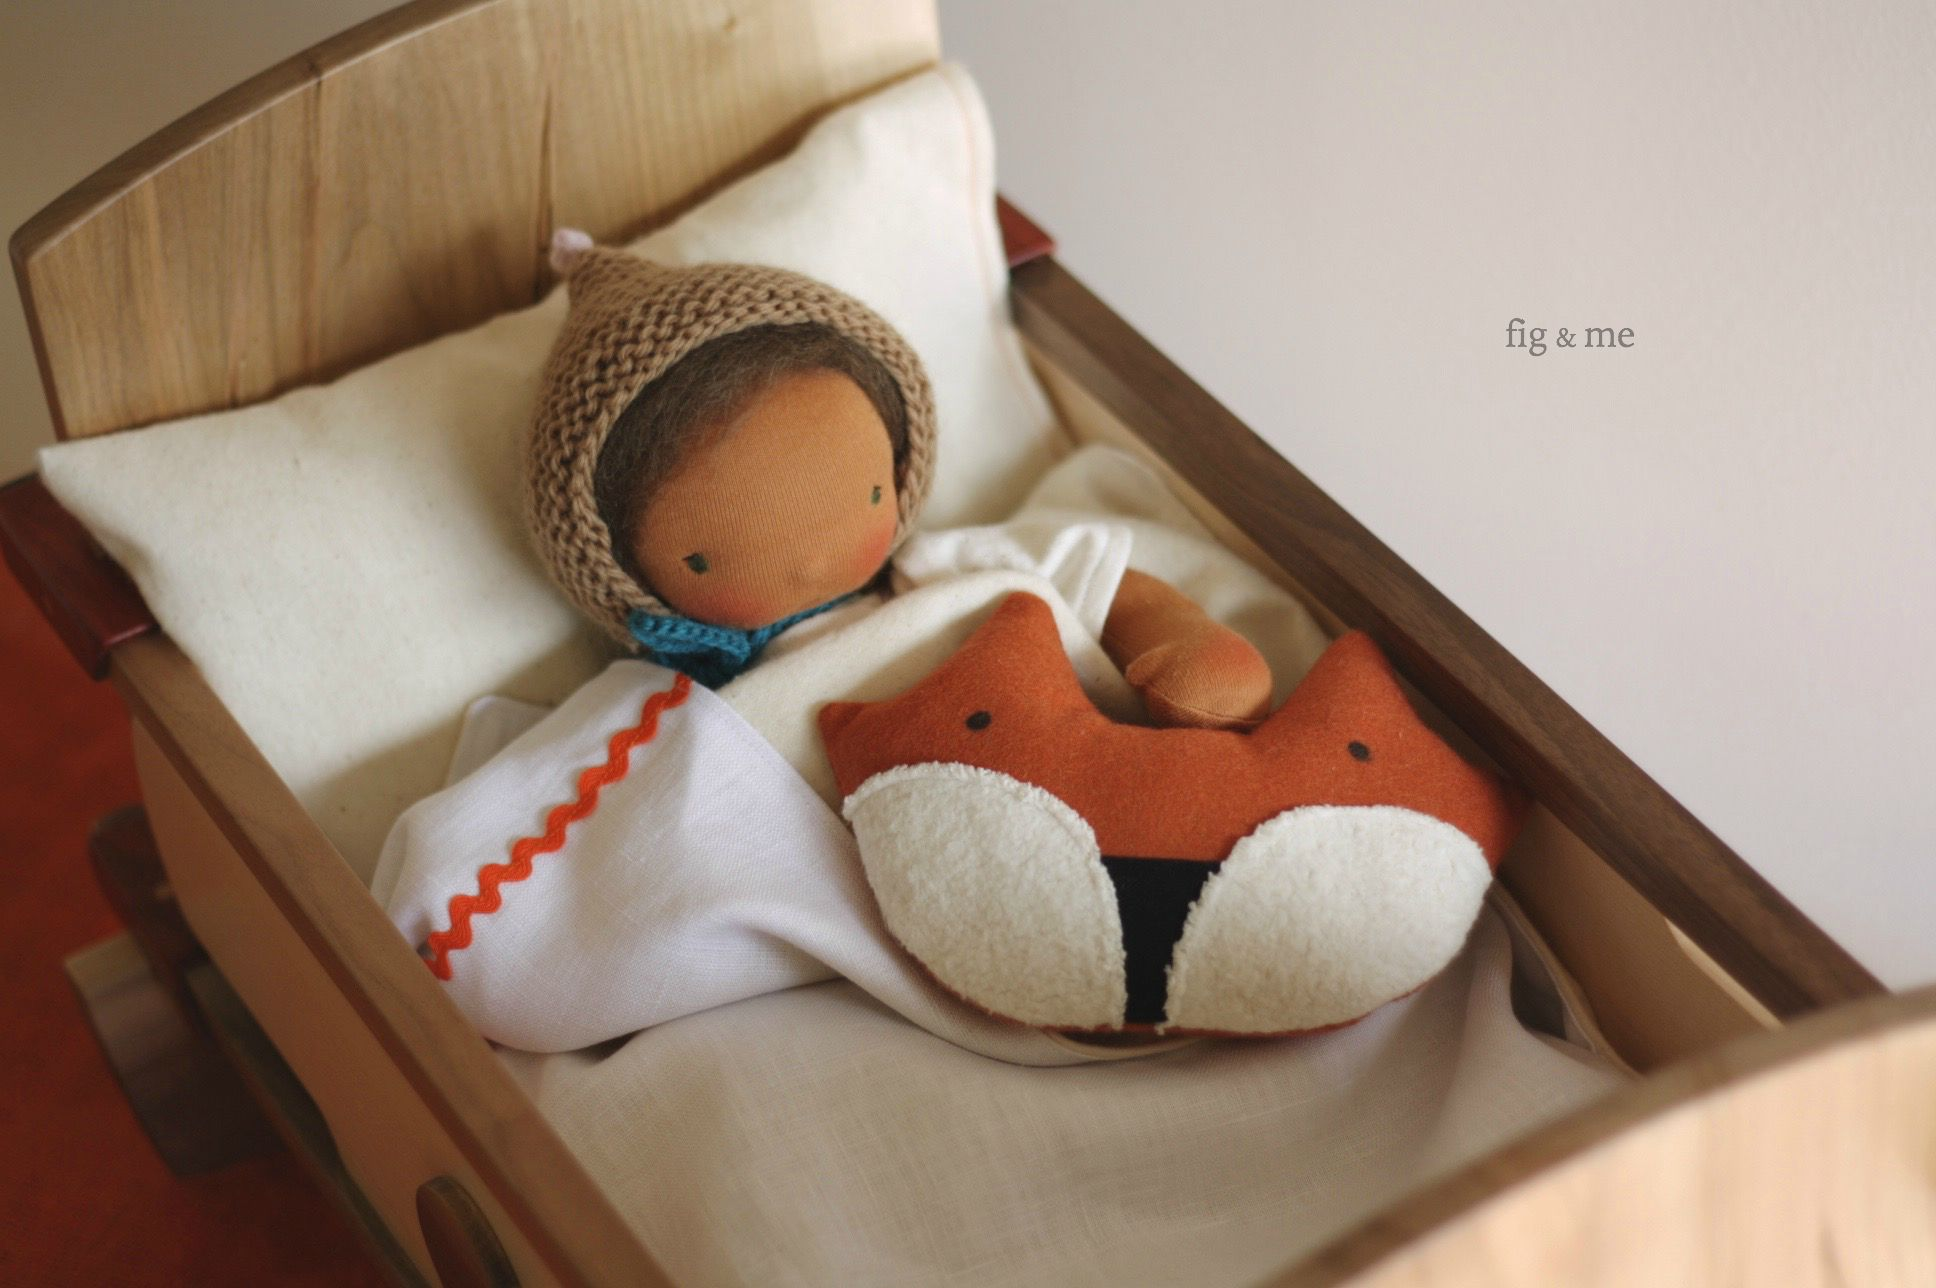 Baby Calpurnia in her wooden cradle, by Fig and me